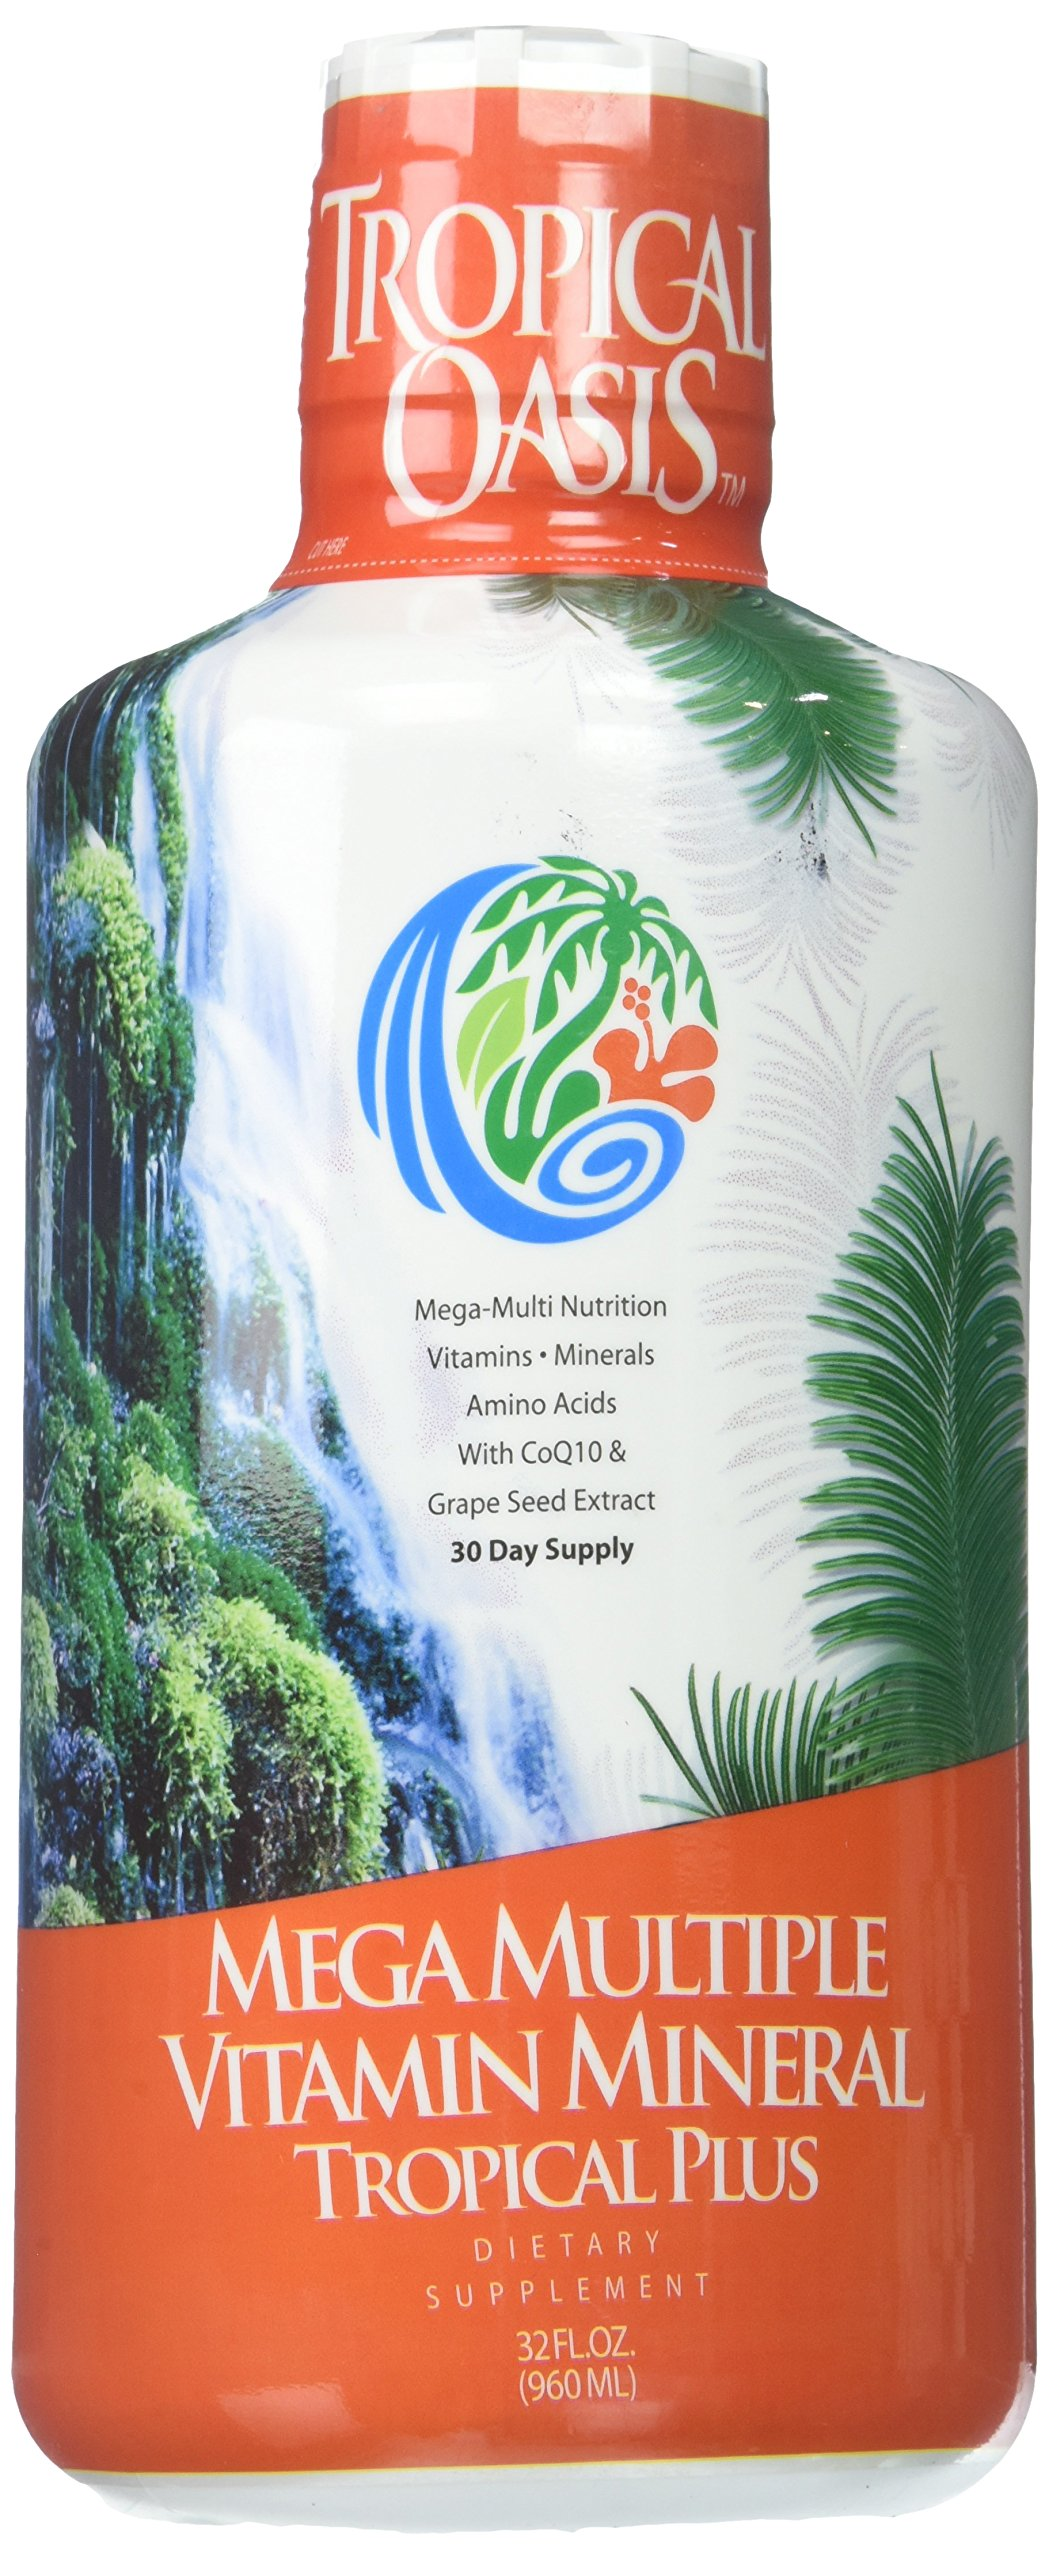 Tropical Oasis Mega Plus - Liquid Multivitamin and Mineral Supplement – Includes 85 Vitamins & Minerals, 20 Amino Acids + CoQ10, Grape Seed Extract & Organic Aloe Vera -- 32oz, 32 servings